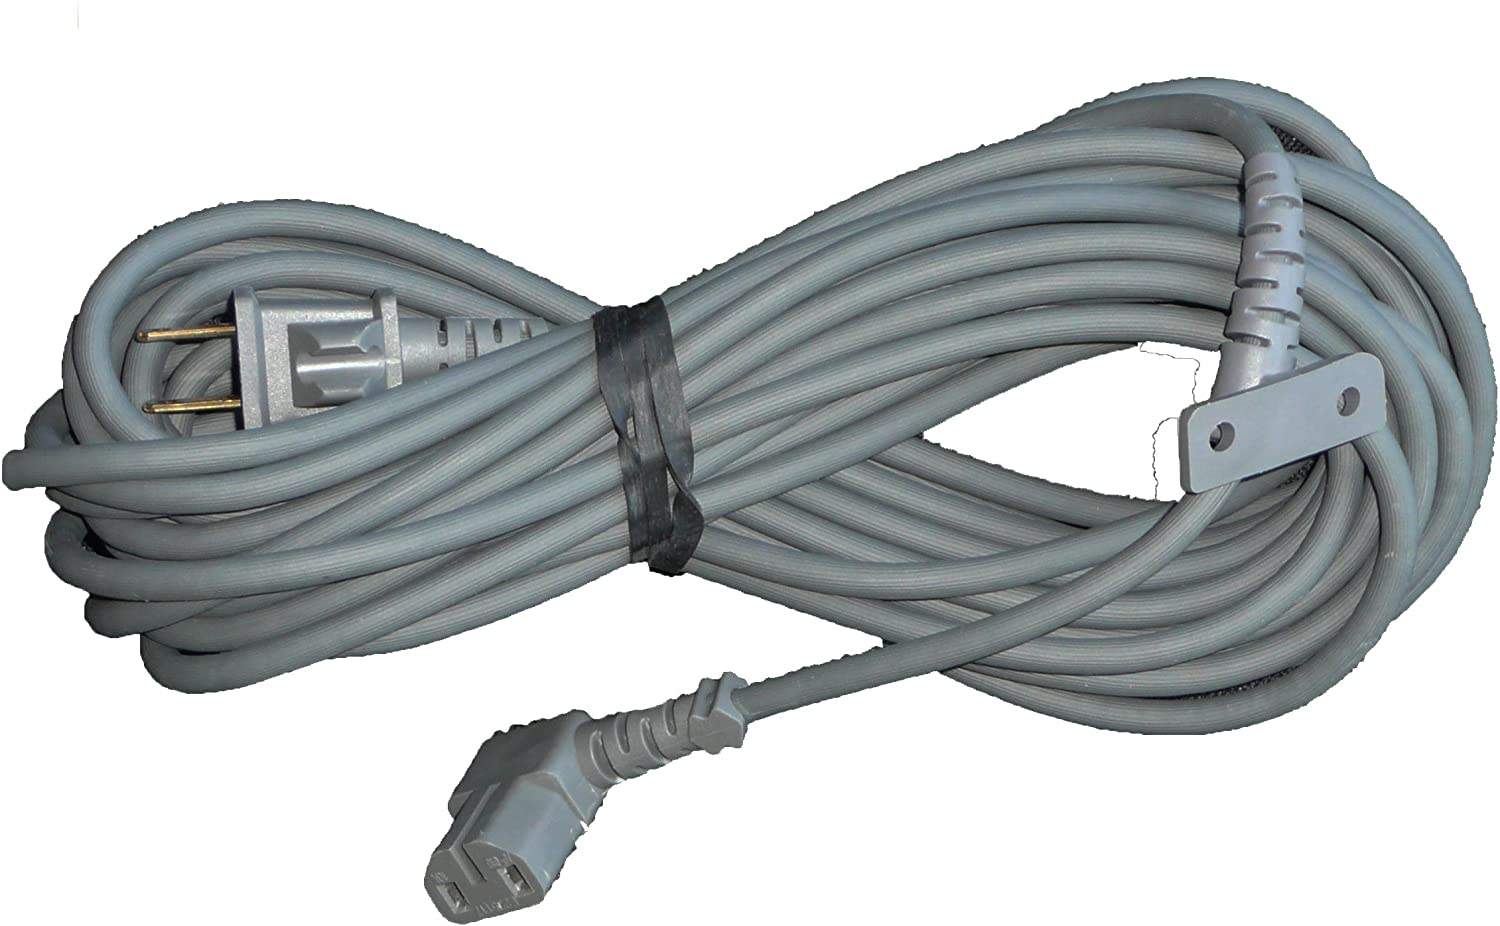 Kirby Sentria Vacuum Cleaner 32 foot Electric Power Cord (Cable), Part #192006, 120 volt, 2 prong, SE G10 G9, Genuine